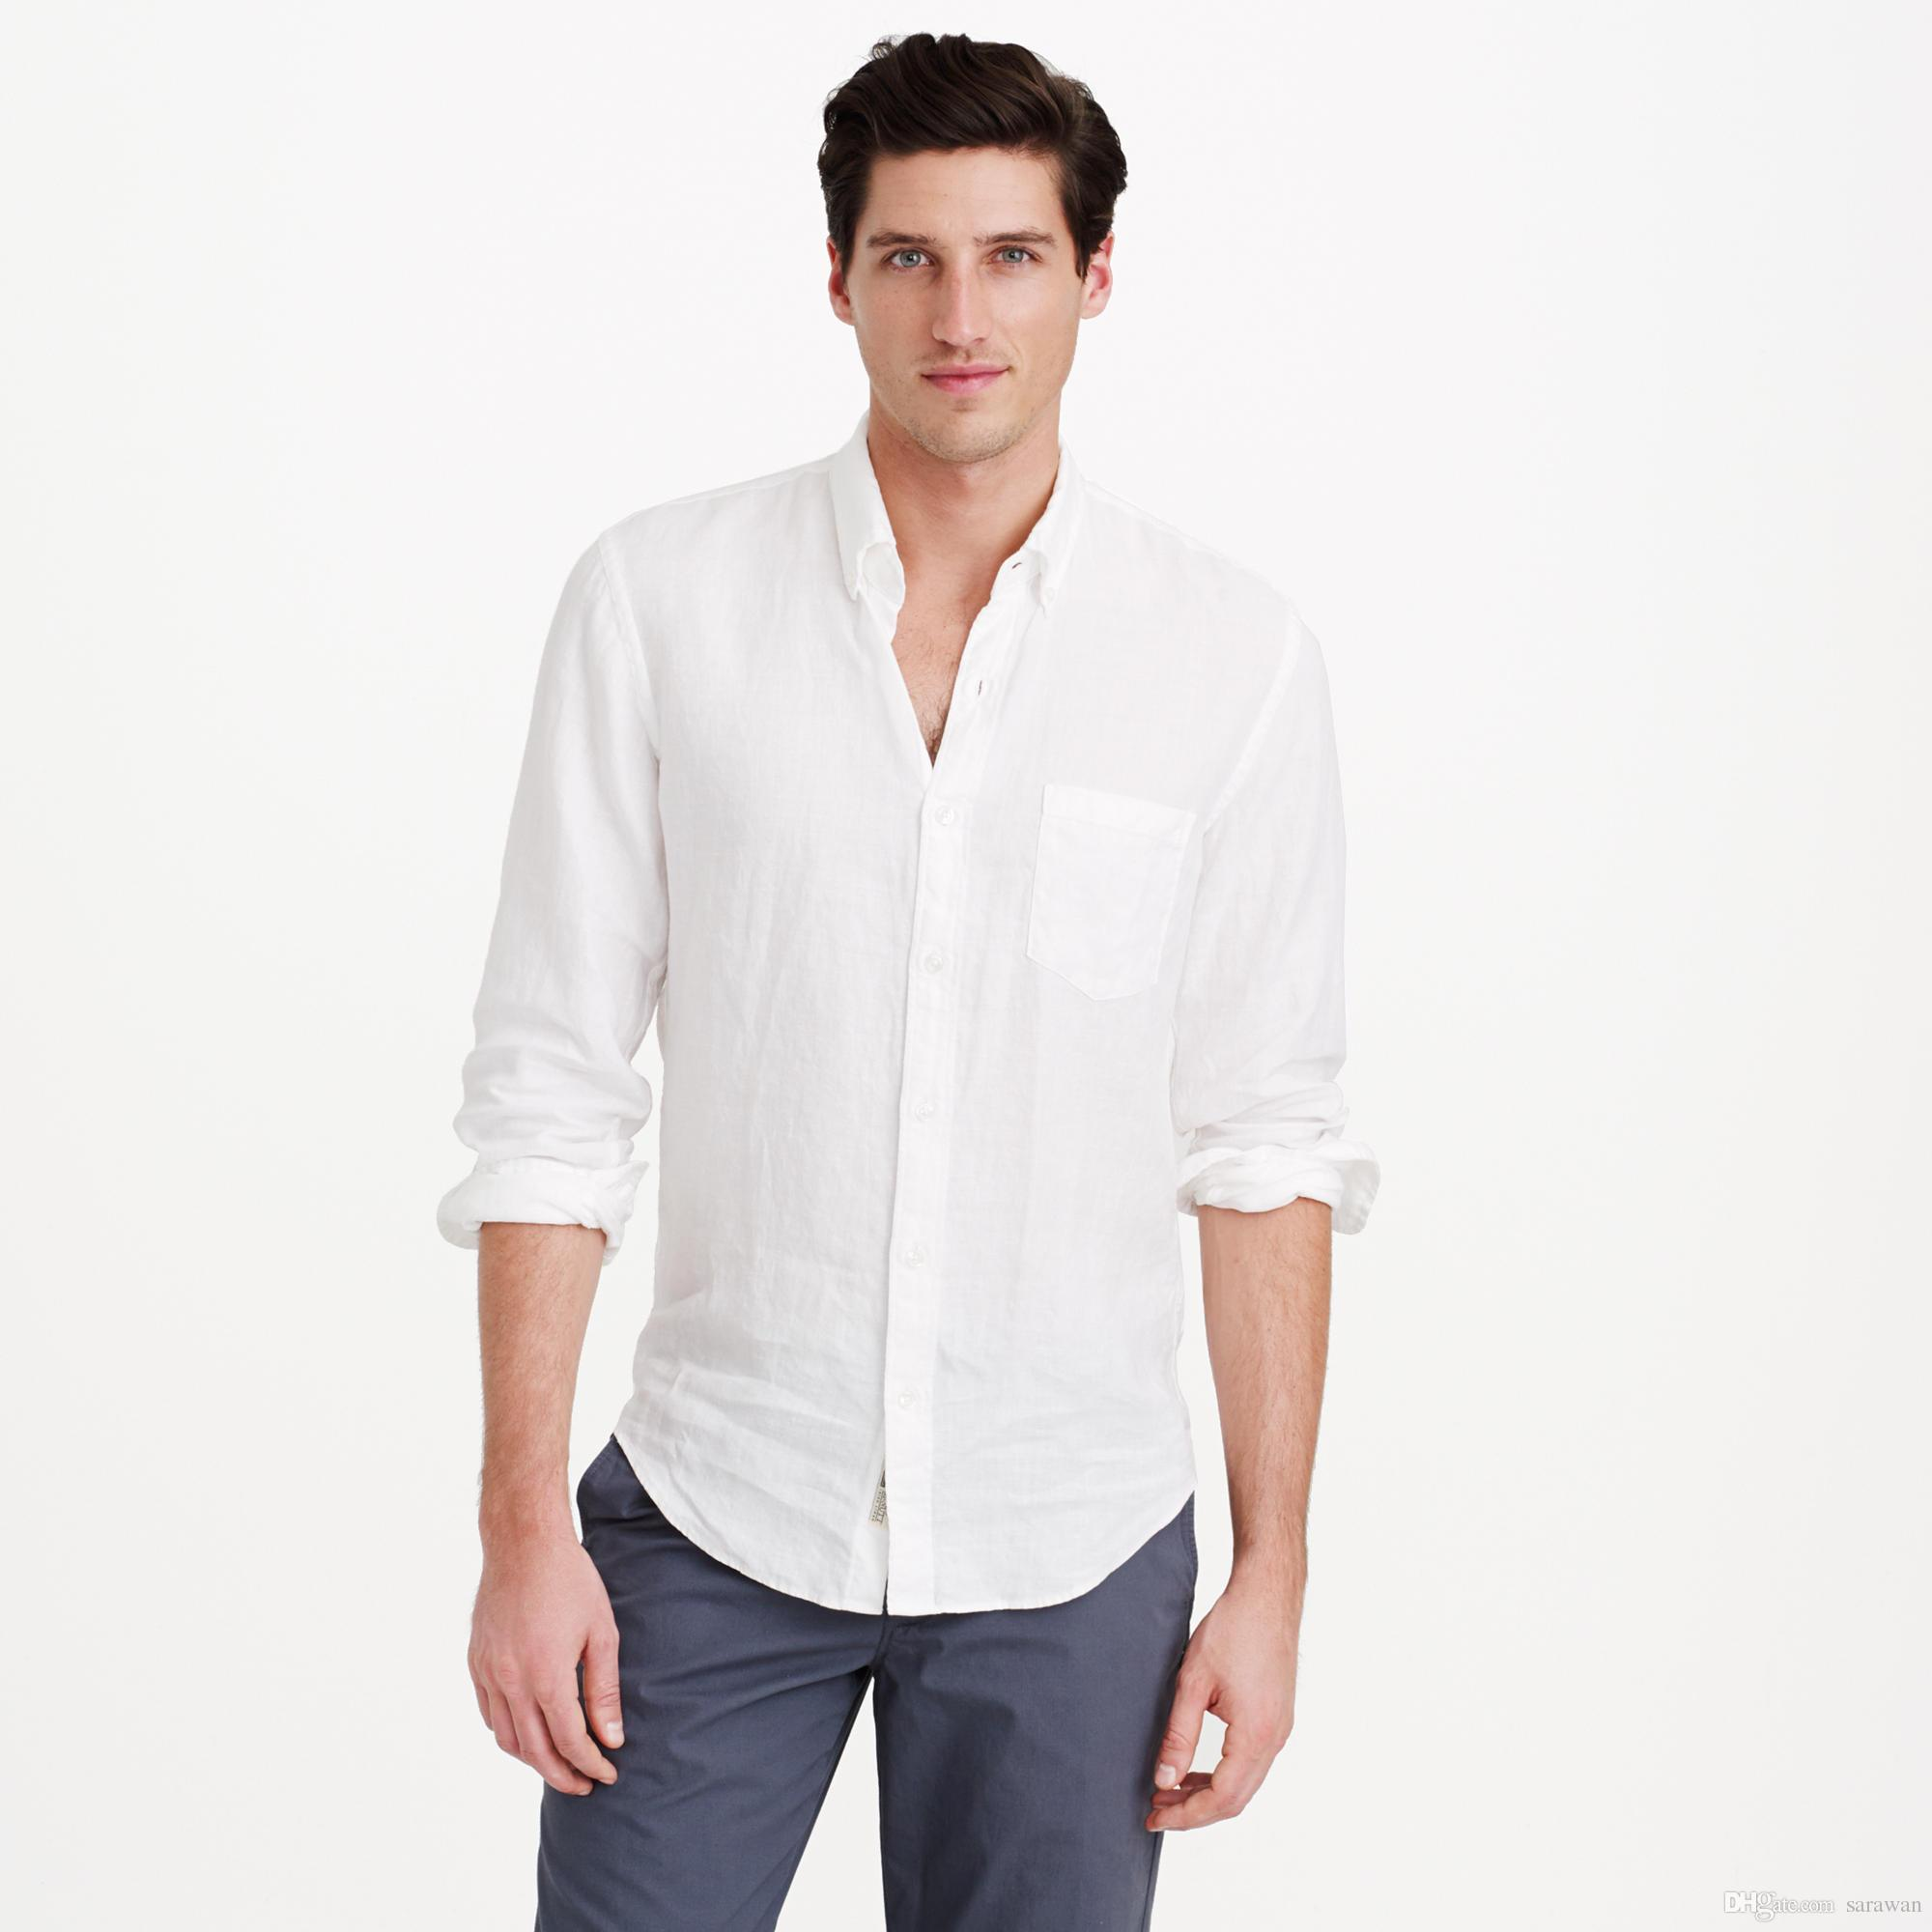 linen shirt mens 2018 white linen shirts men linen shirt tailor made,custom mens white linen  shirts for men HLLYCWW